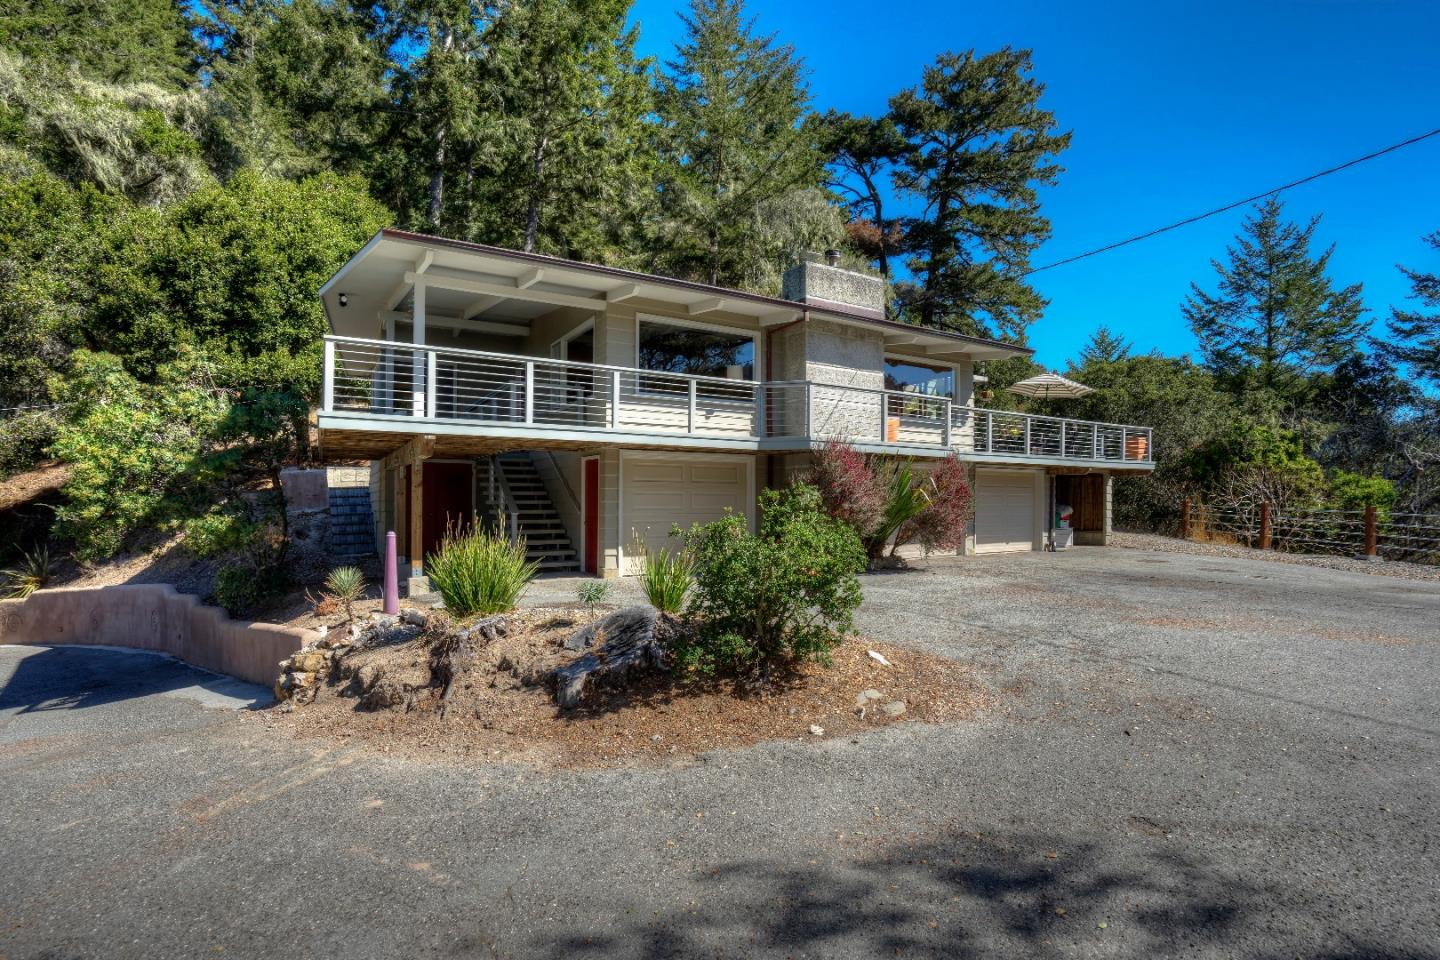 4399 Pescadero Creek Road, PESCADERO, CA 94060